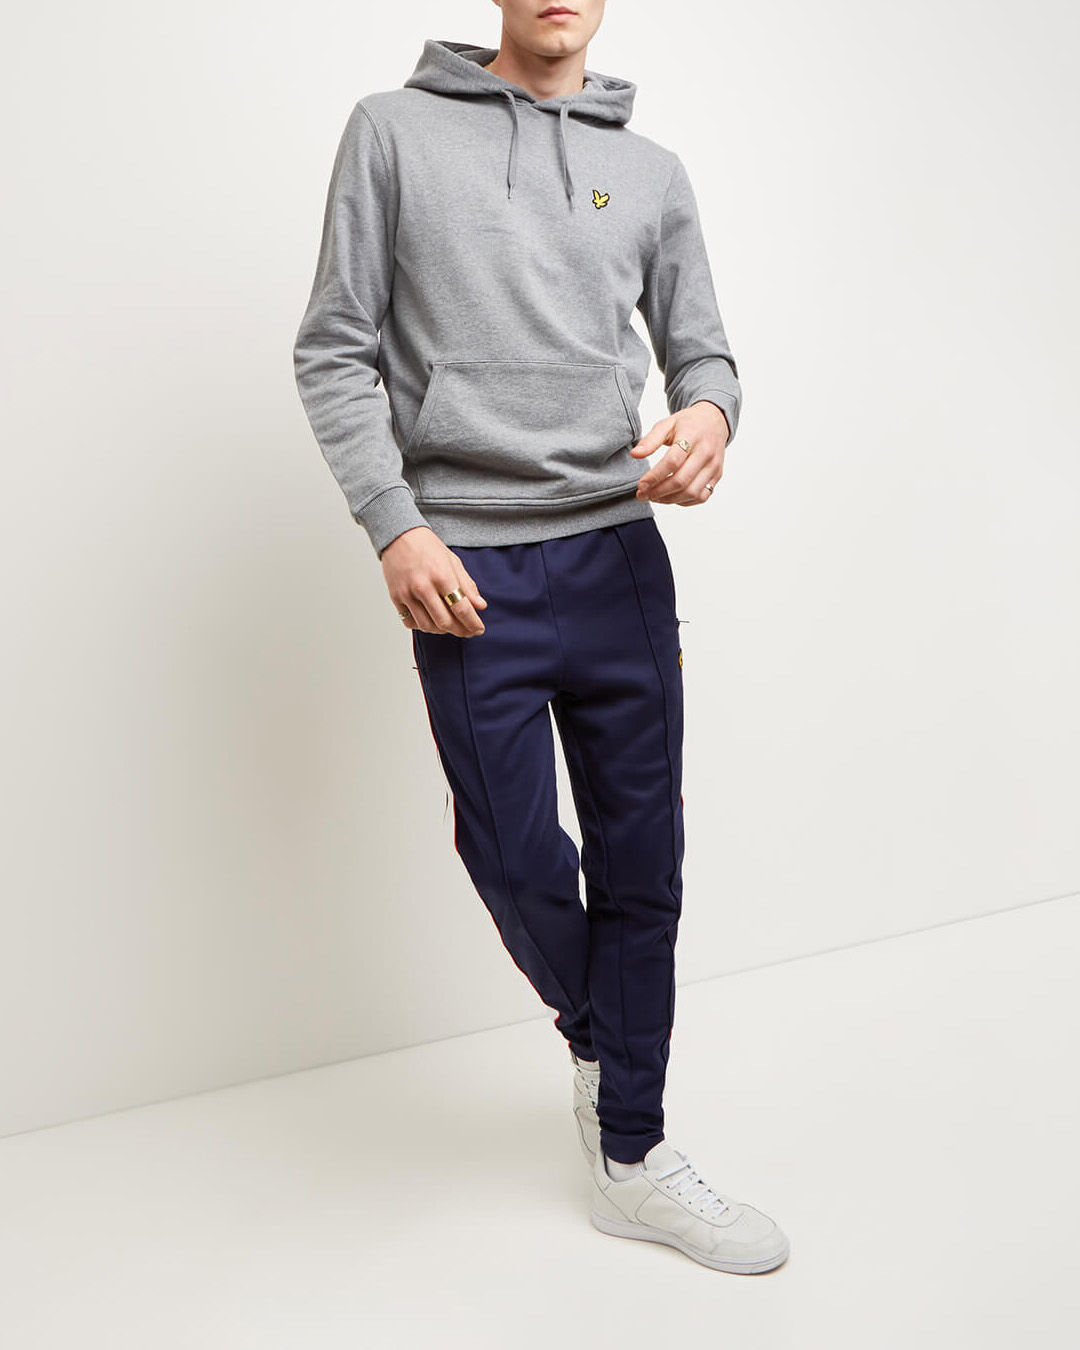 Lyle-and-Scott-Mens-Pullover-Hoodie-Cotton thumbnail 34